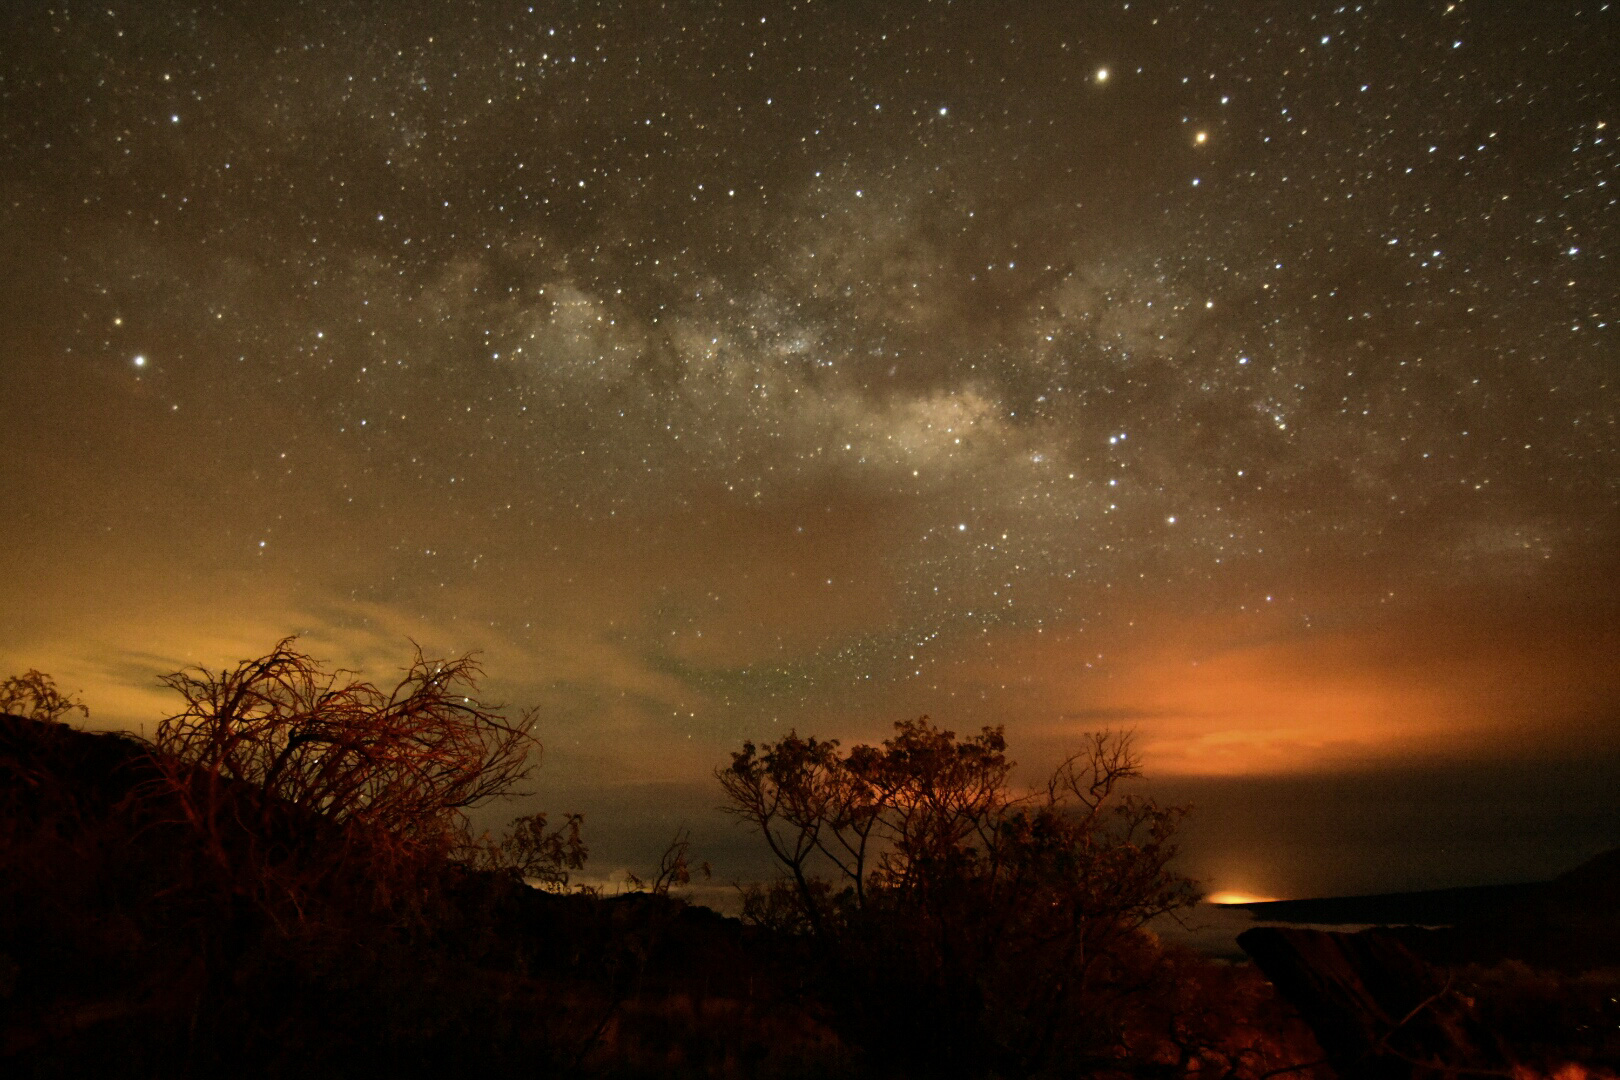 Stargazing at Mauna Kea, Hawaii